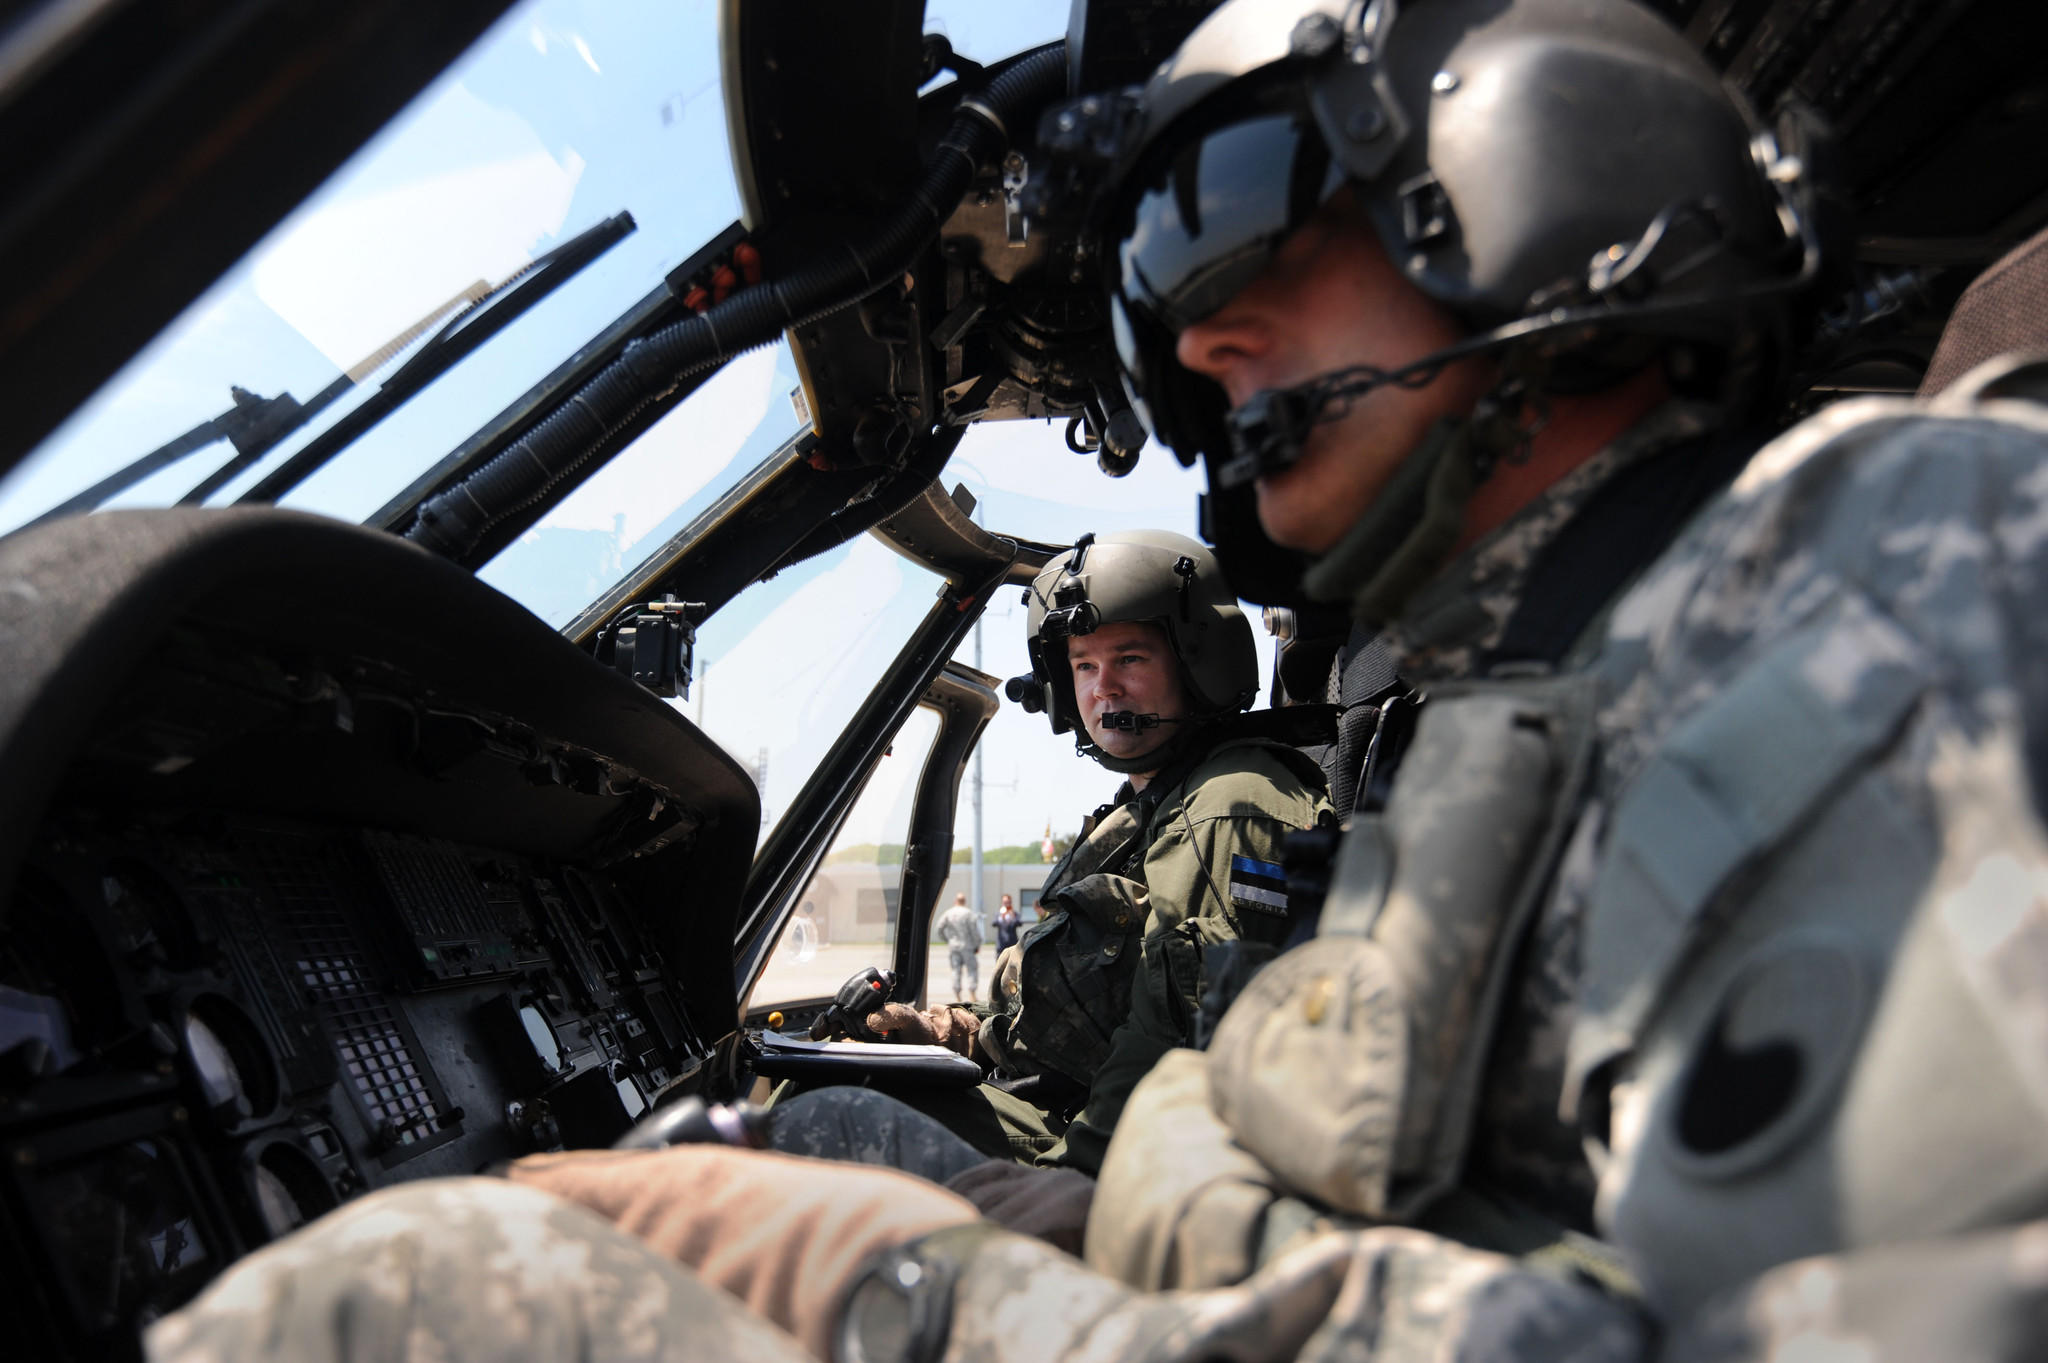 Left to right, CPT Martin Noorsalu of the Estonian Air Force and Chief Warrant Officer 5 David Eppler of the Maryland National Guard go through post-flight procedures after Noorsalu lands a UH-60, Black Hawk helicopter at the Weide Army Airfield.